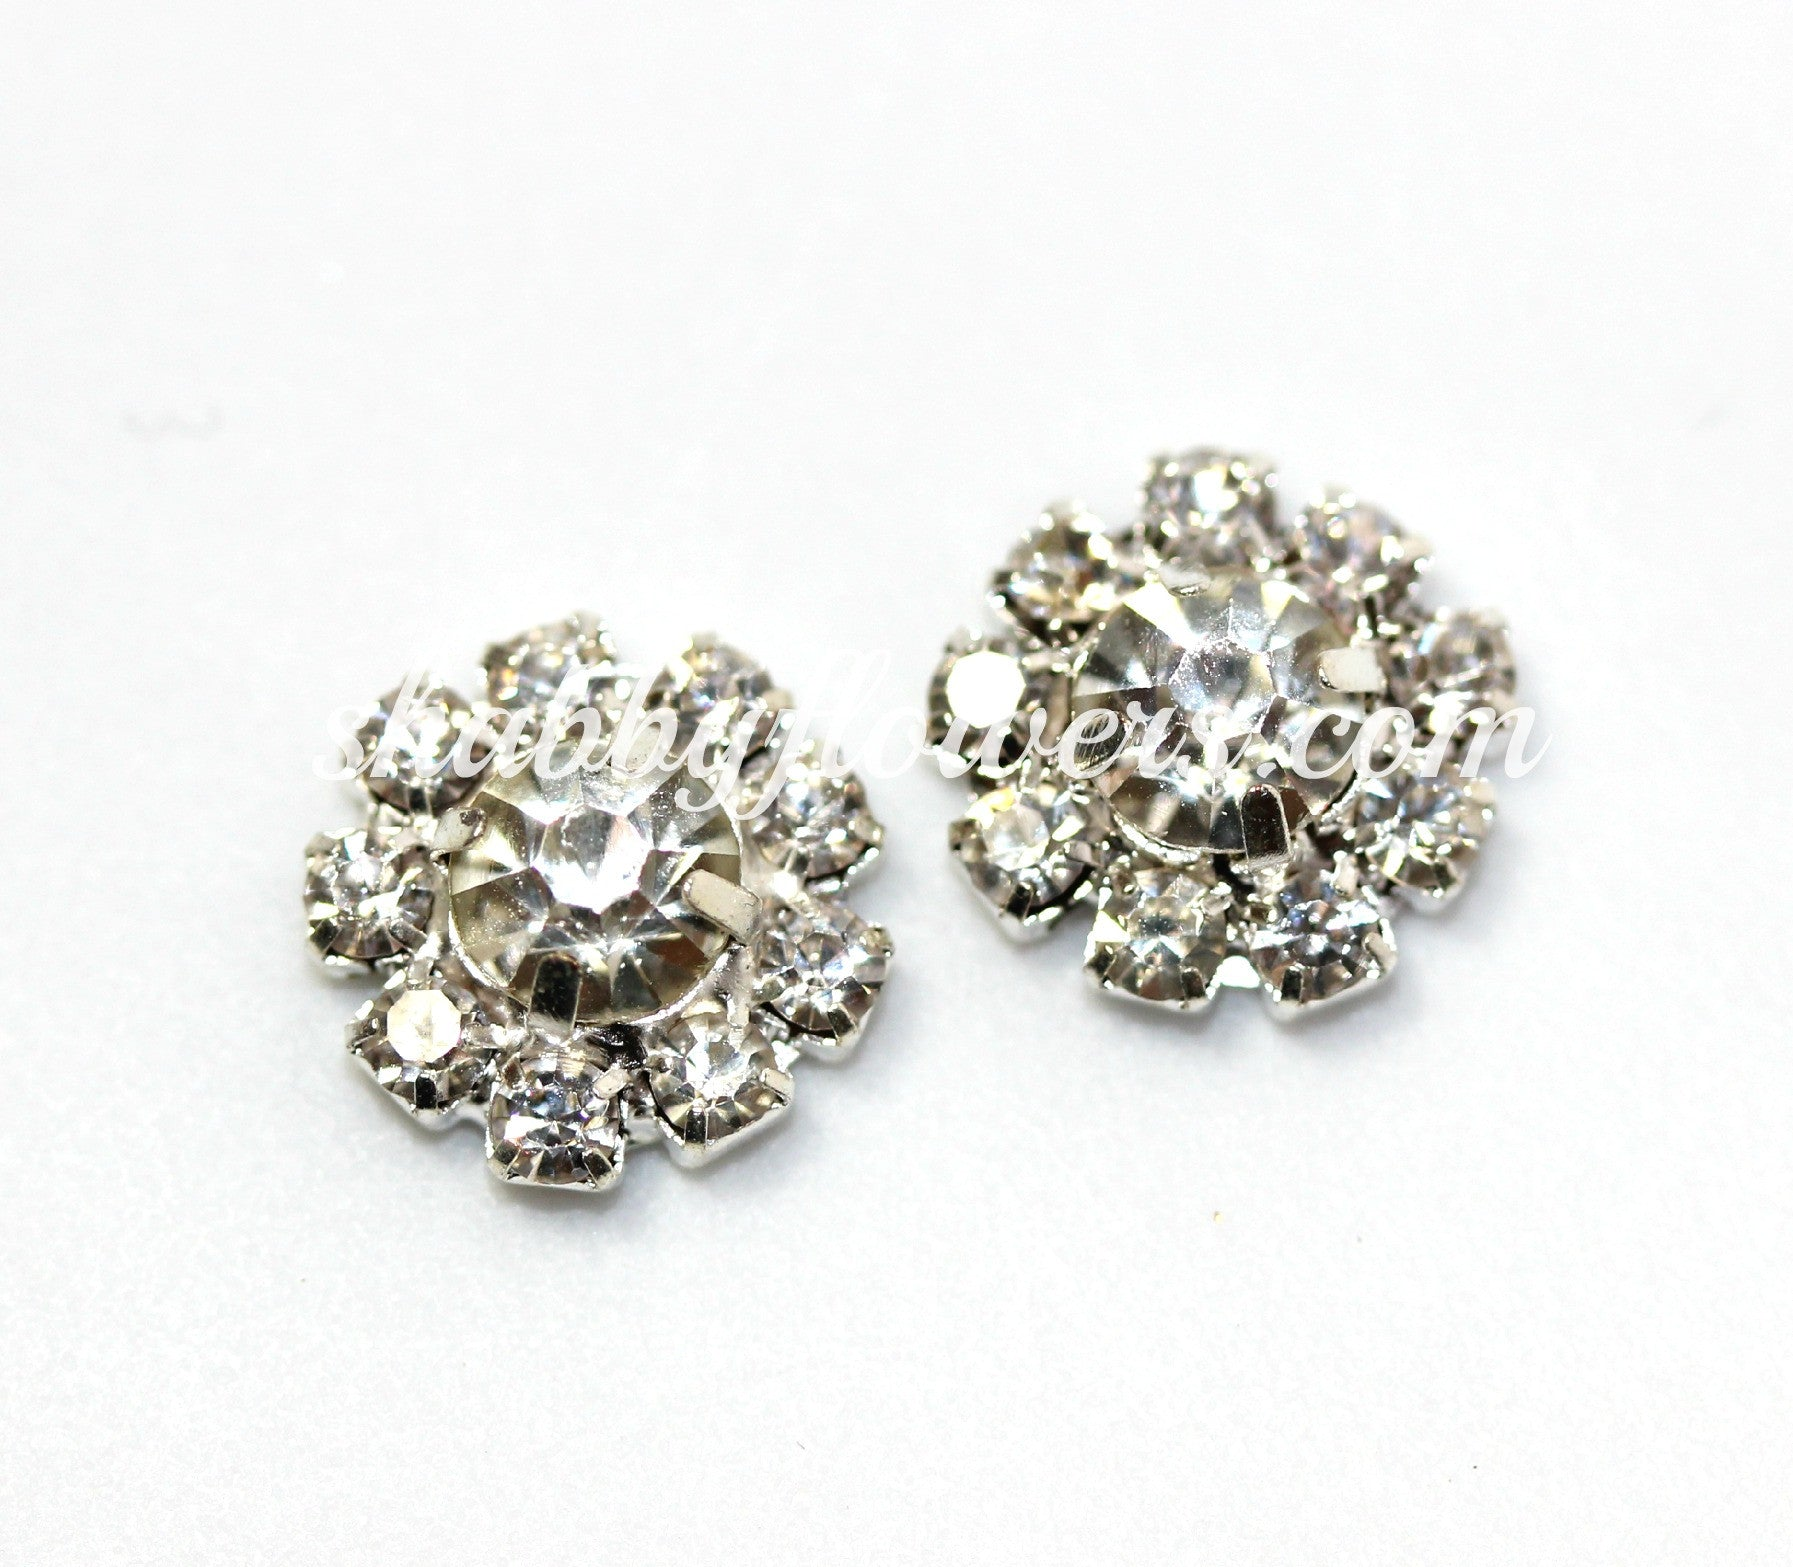 Embellishment - SILVER Petite Rhinestone in CLEAR - shabbyflowers.com